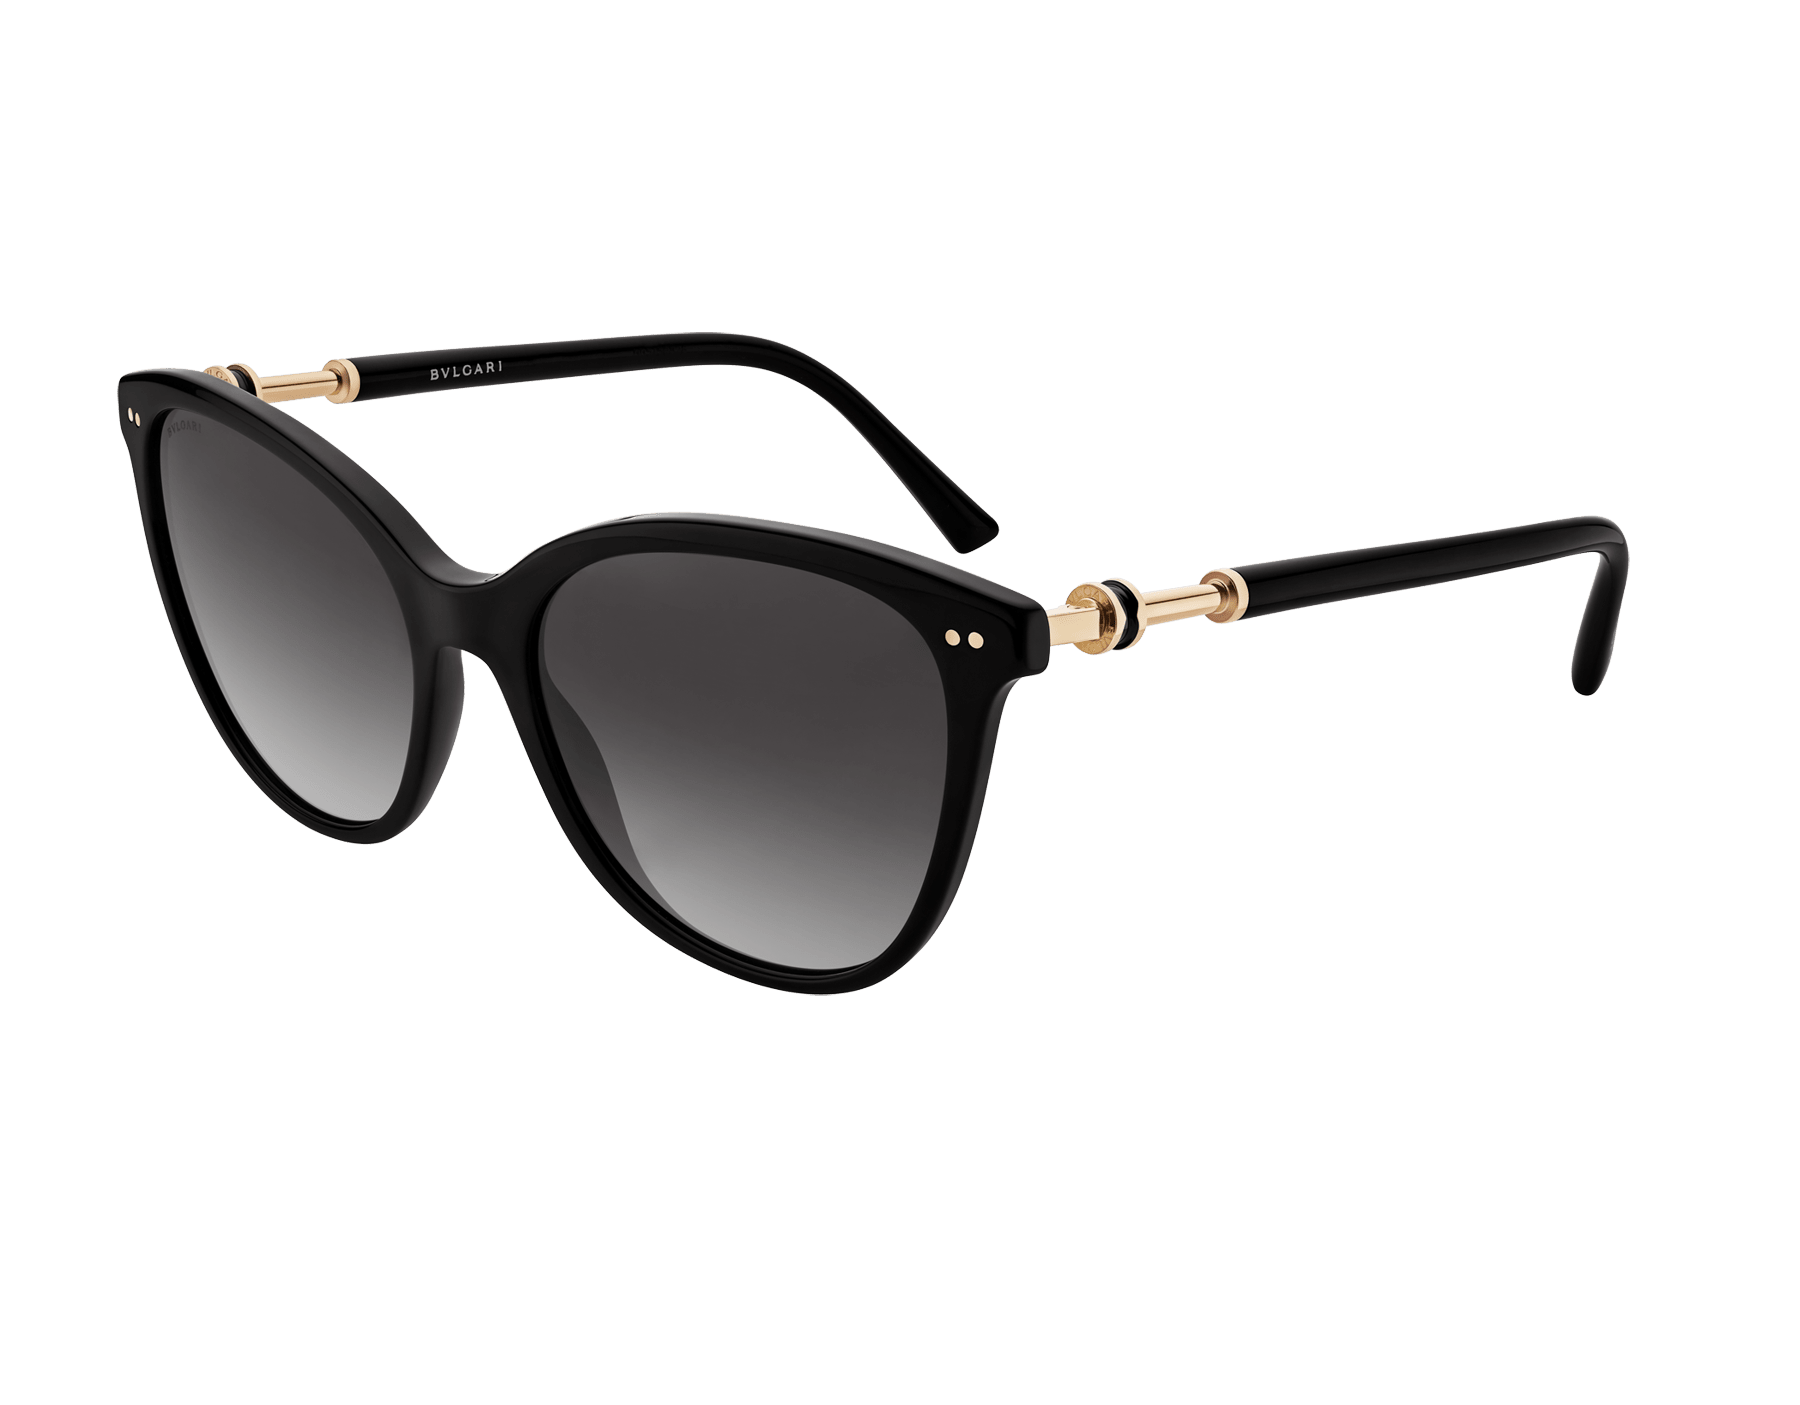 B.zero1 acetate cat-eye sunglasses 904086 image 1